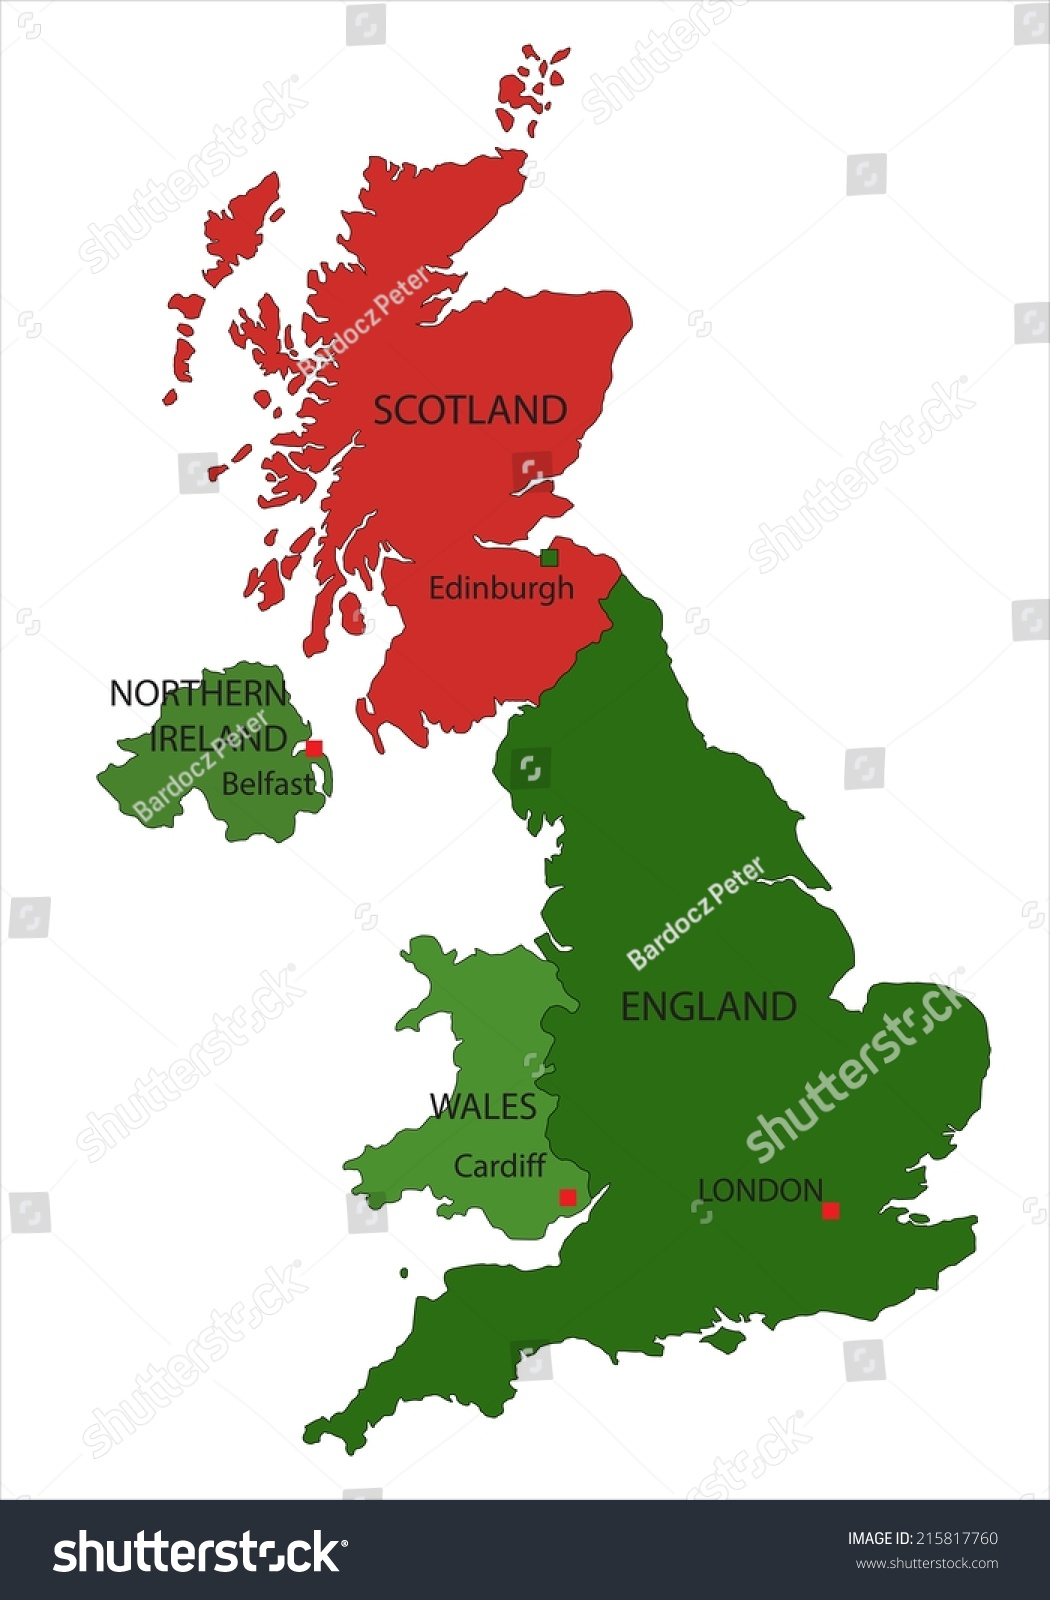 Map Of Uk And Scotland.Highly Detailed United Kingdom Scotland Map Stock Vector Royalty